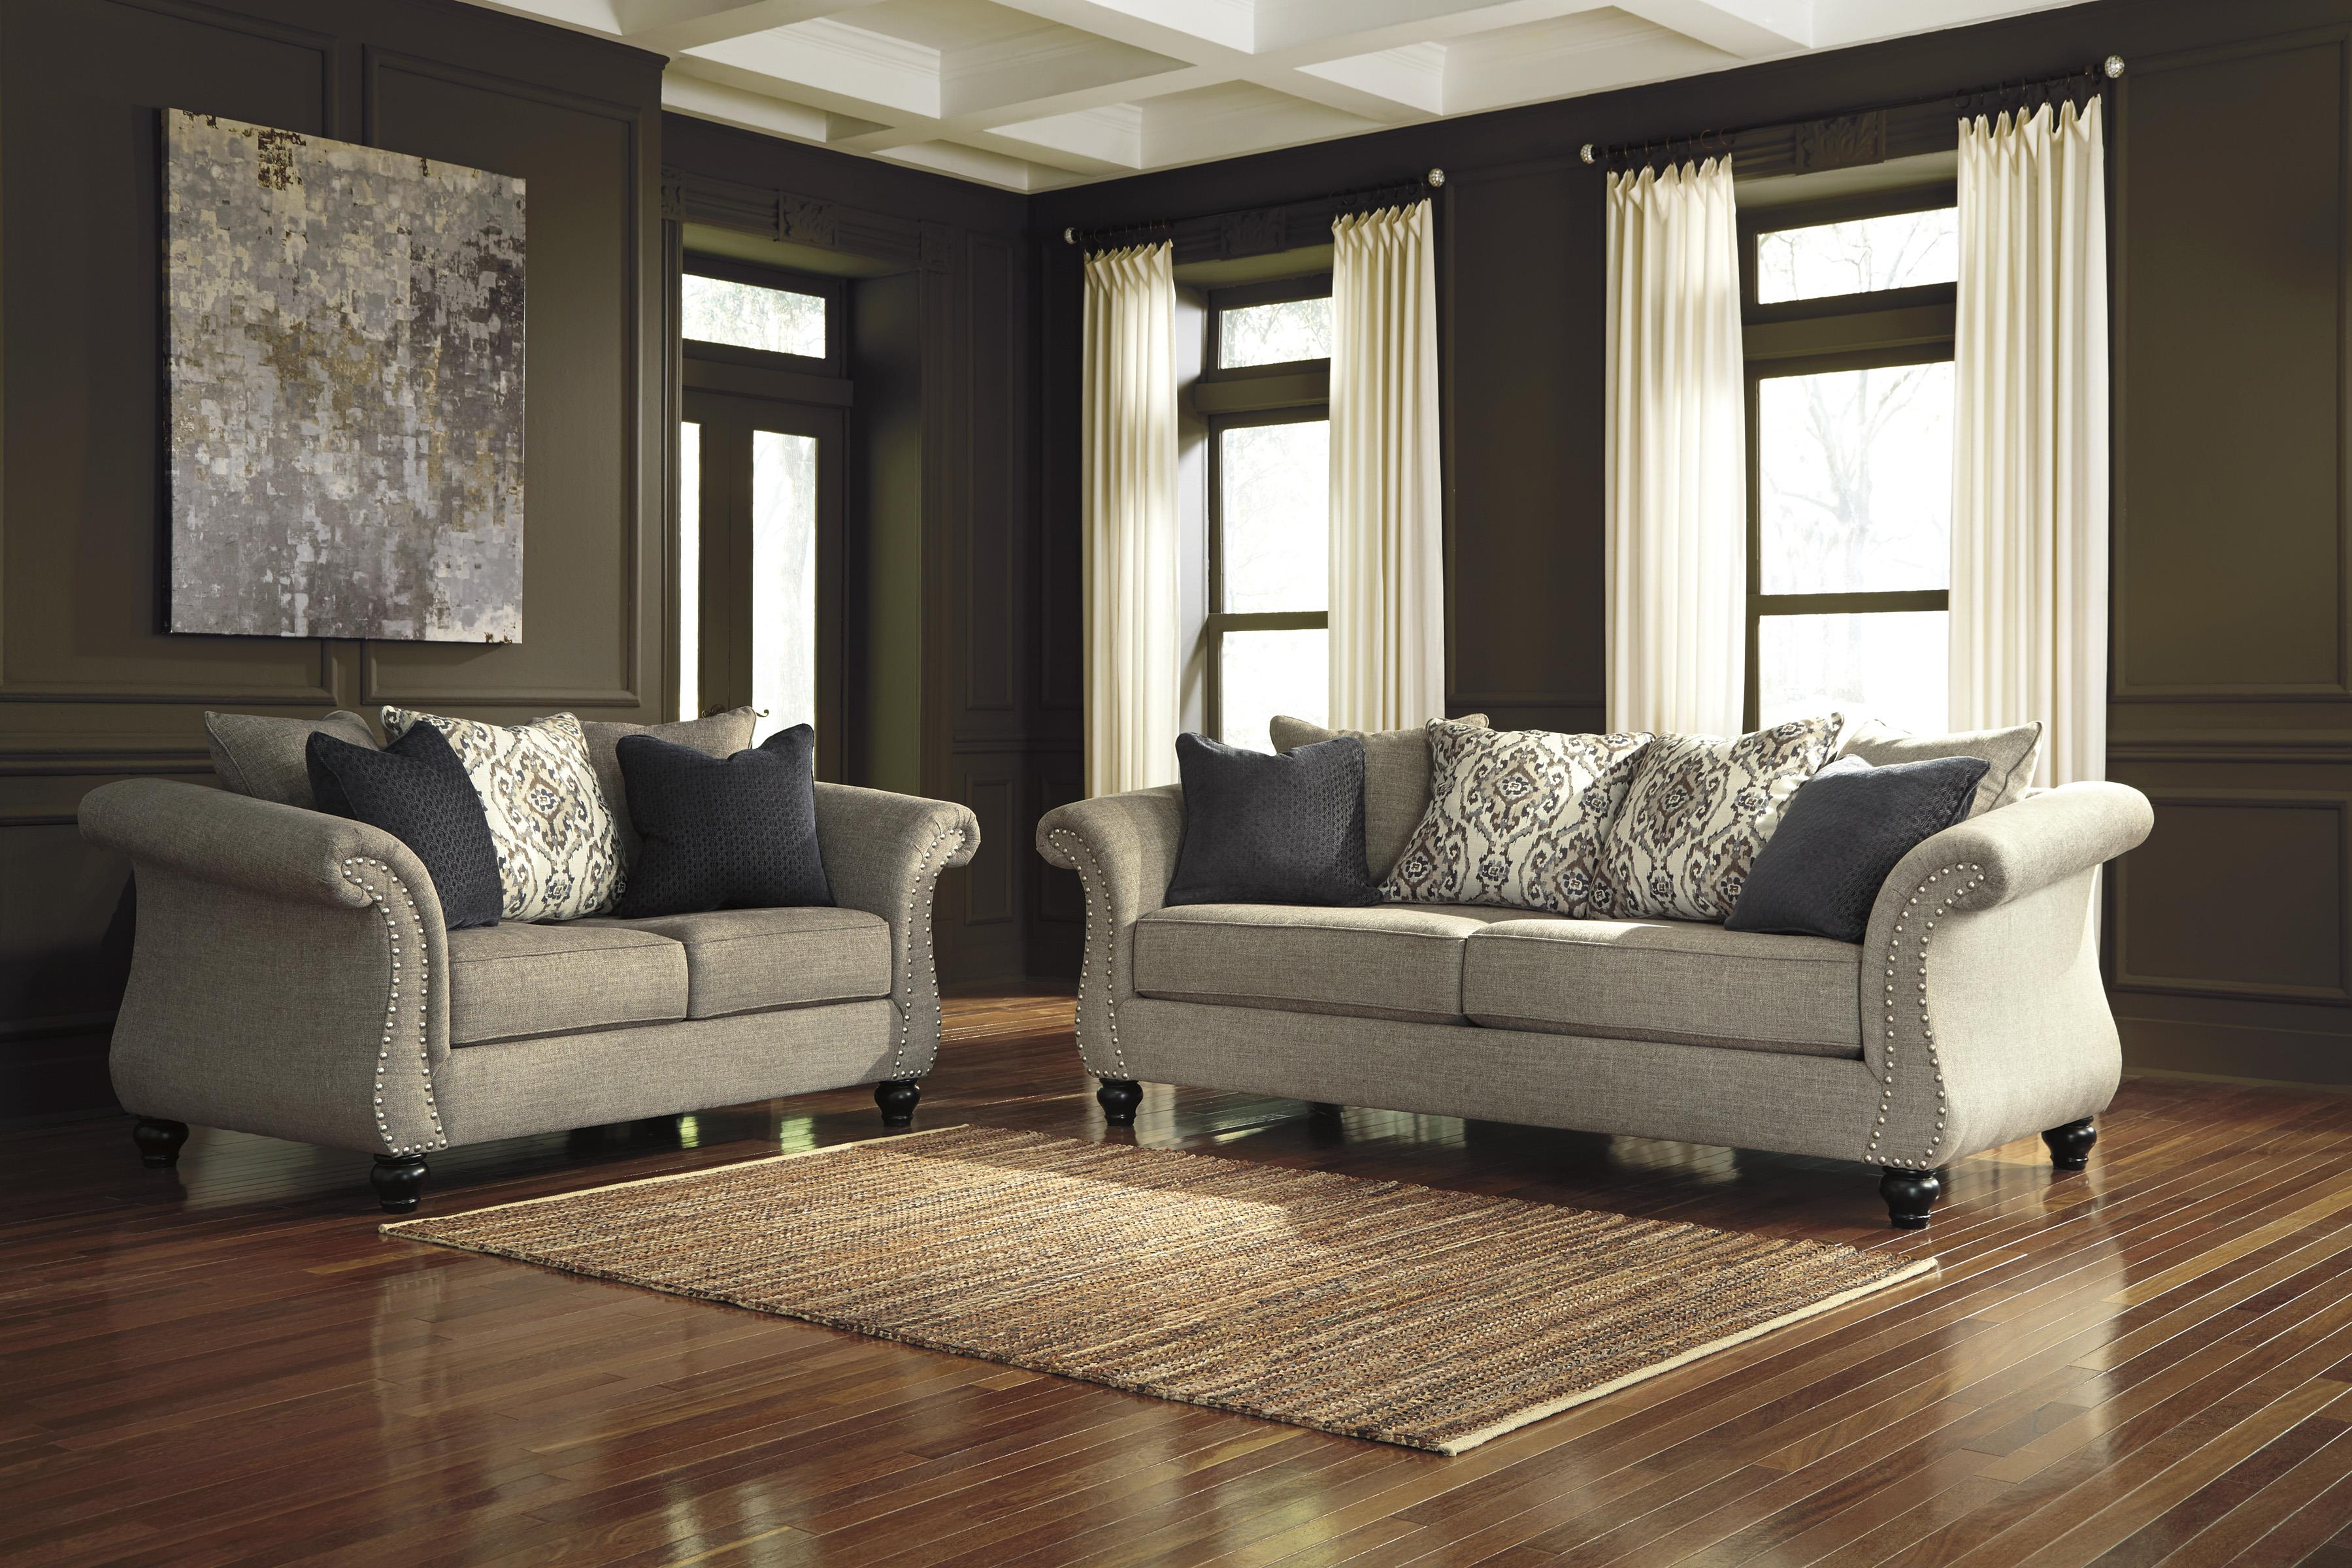 Benchcraft Jonette Stationary Living Room Group - Item Number: 46101 Living Room Group 1